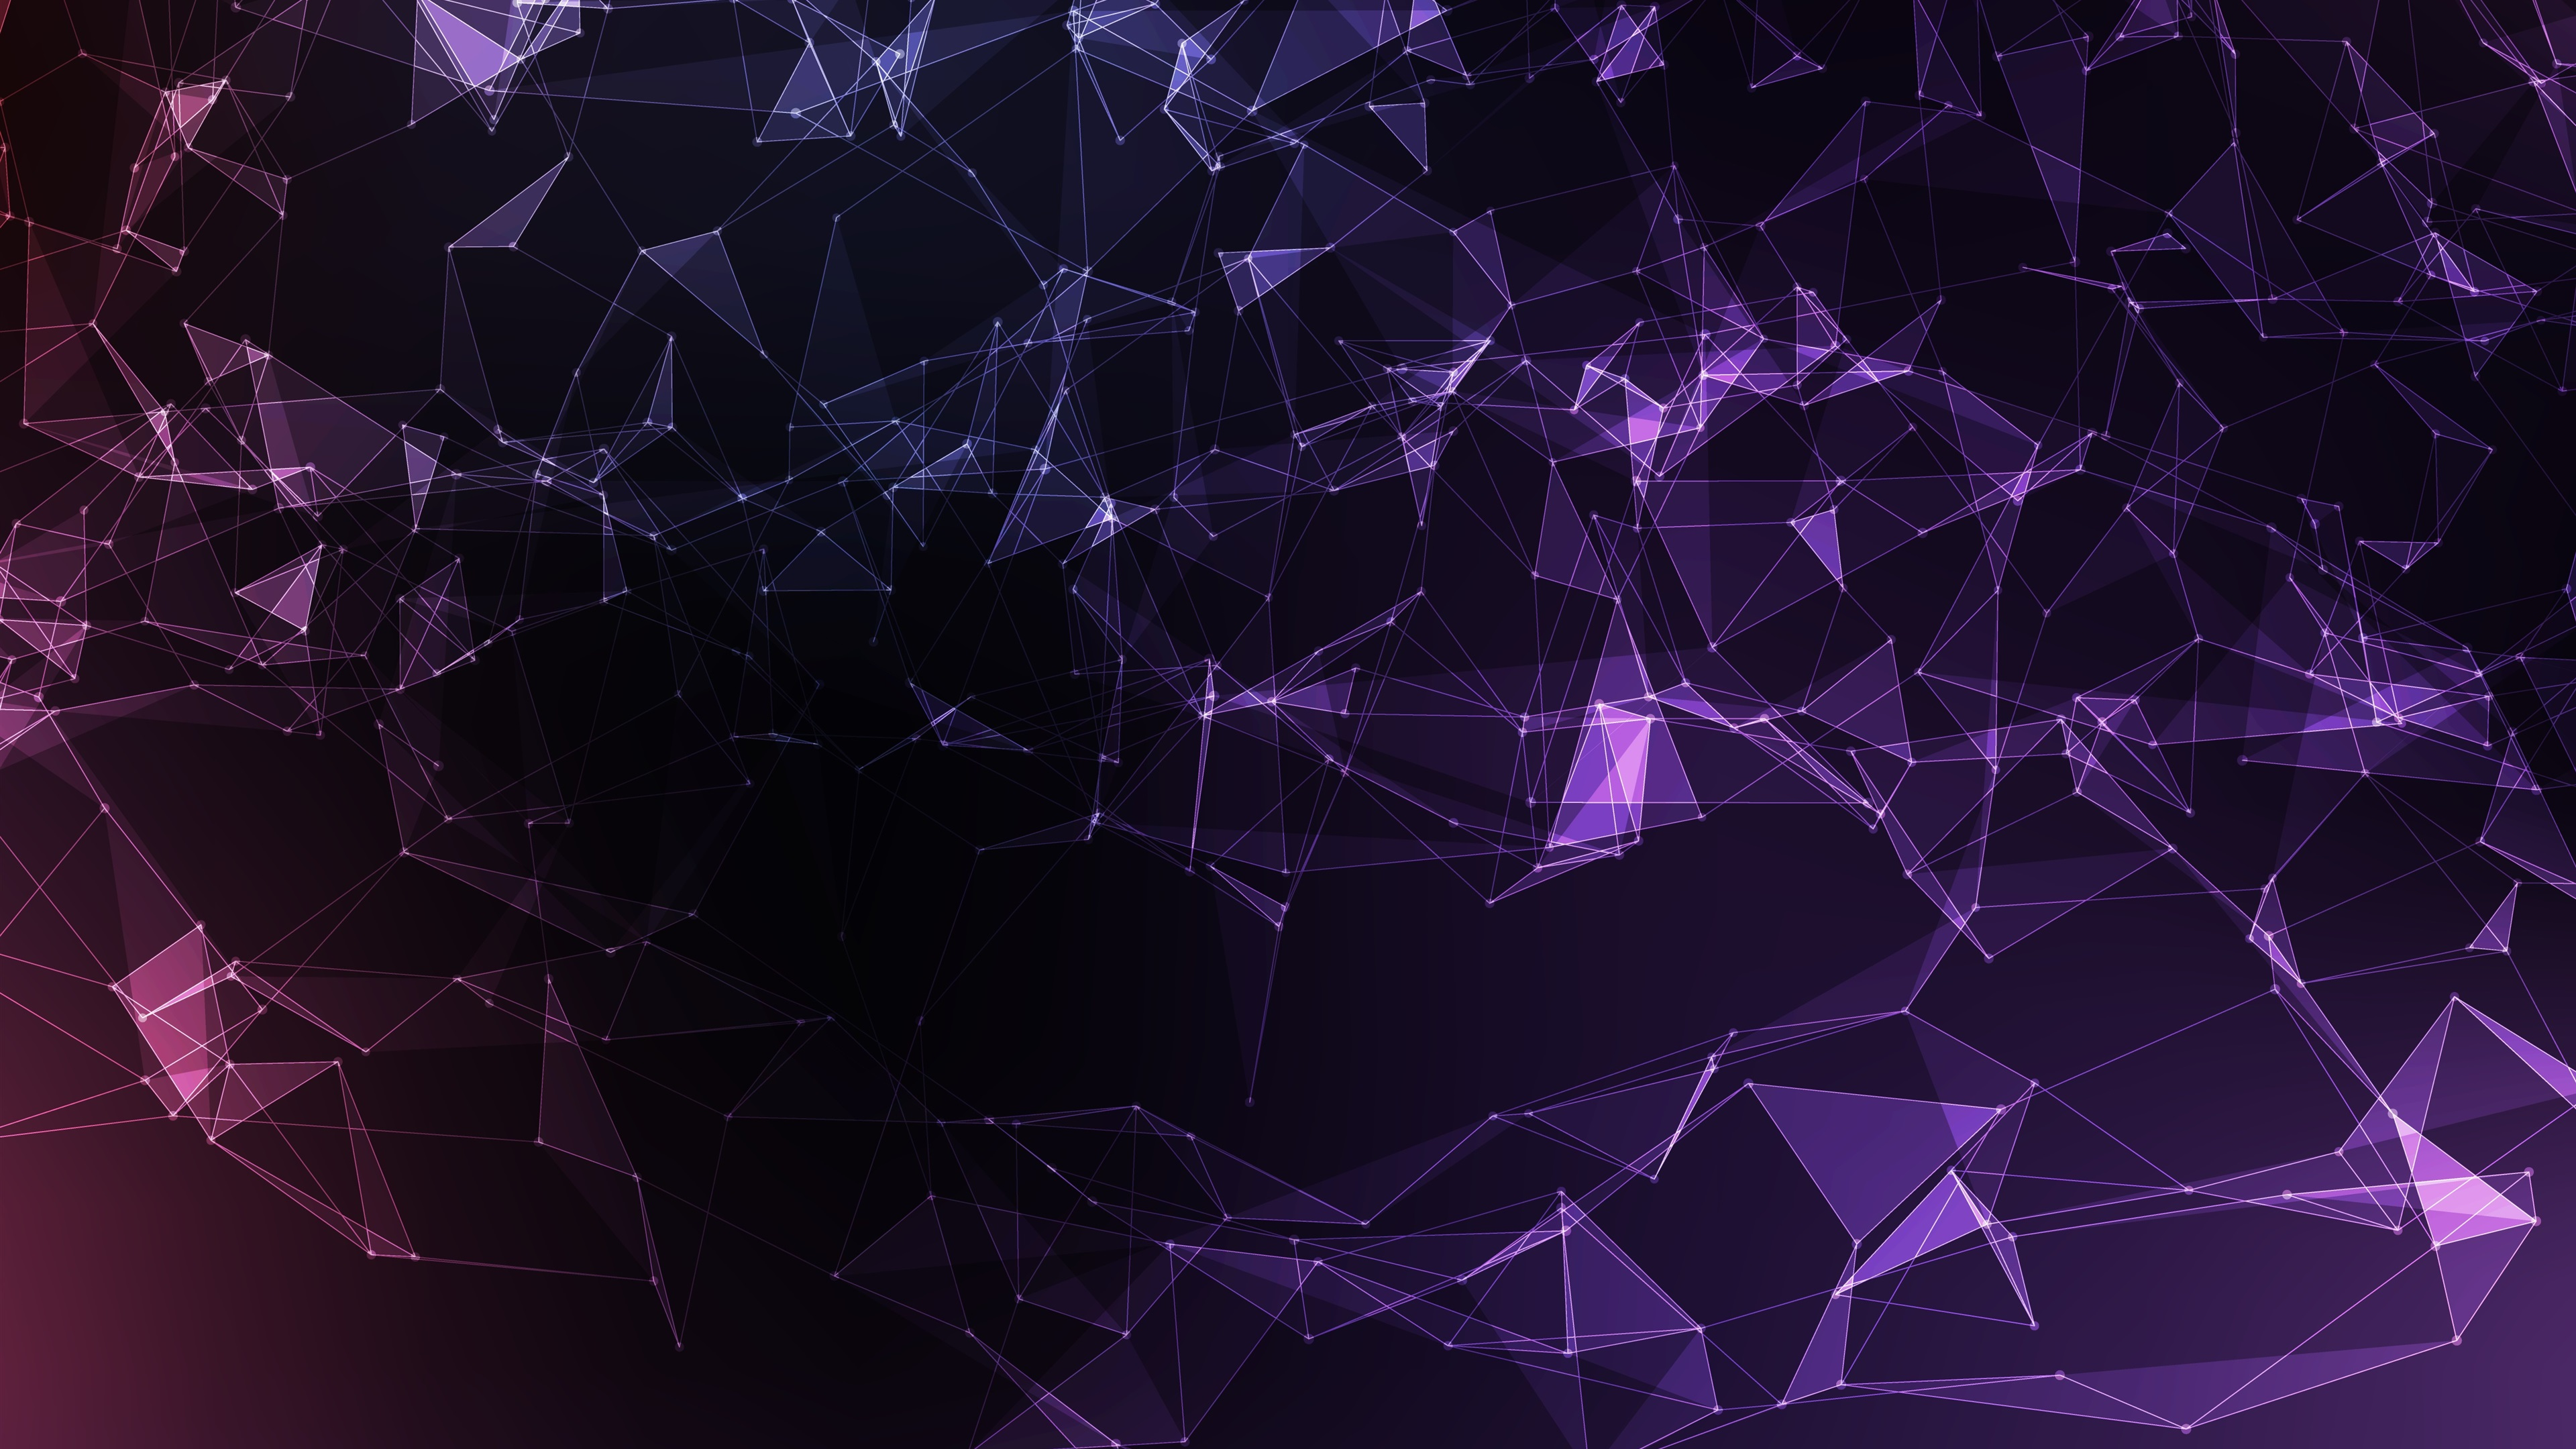 Wallpaper Abstract Mesh Vector Violet 3840x2160 Uhd 4k